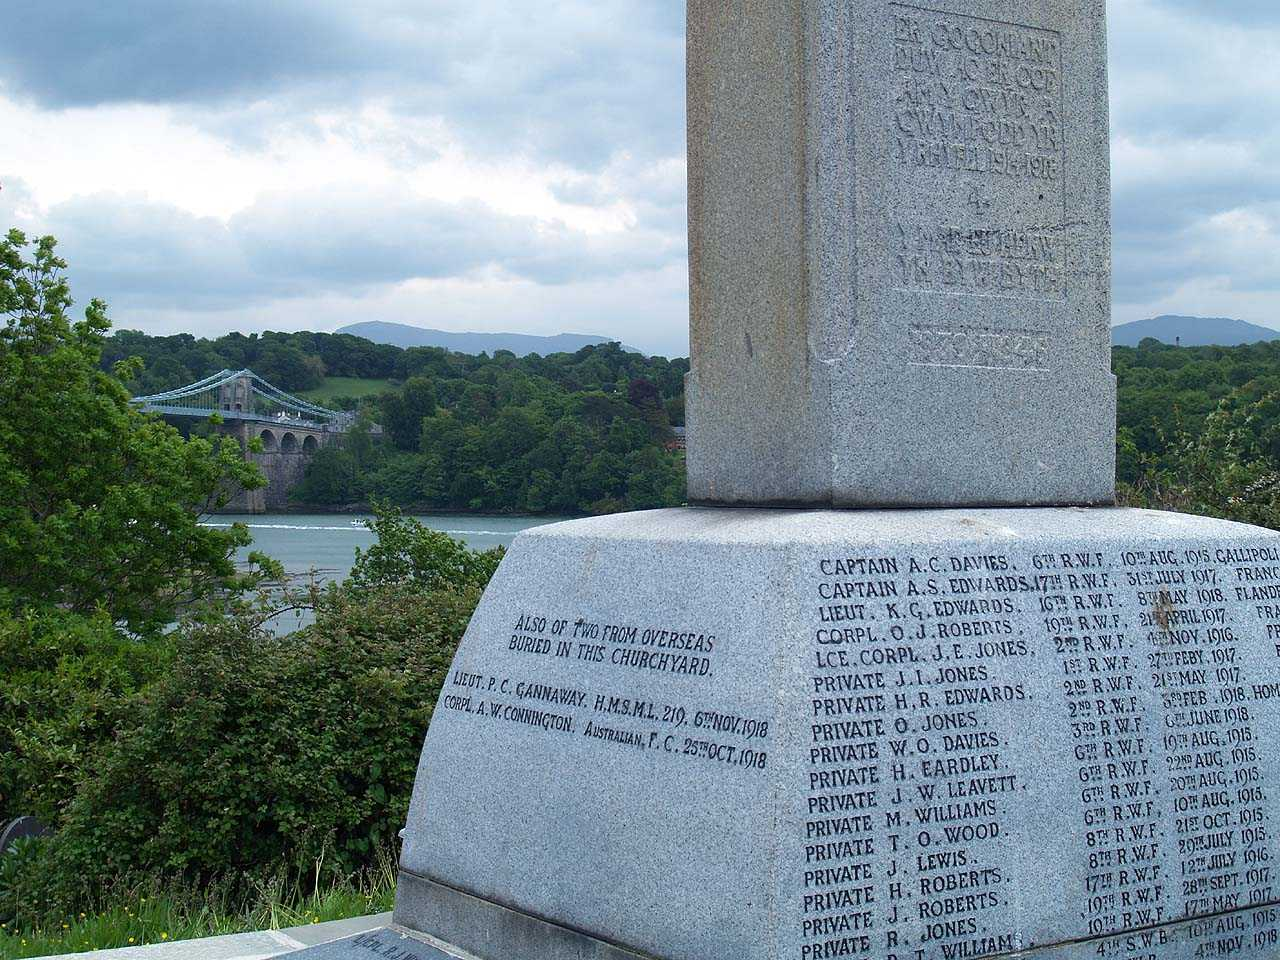 Menai Bridge, War Memorial with Menai Bridge to the rear